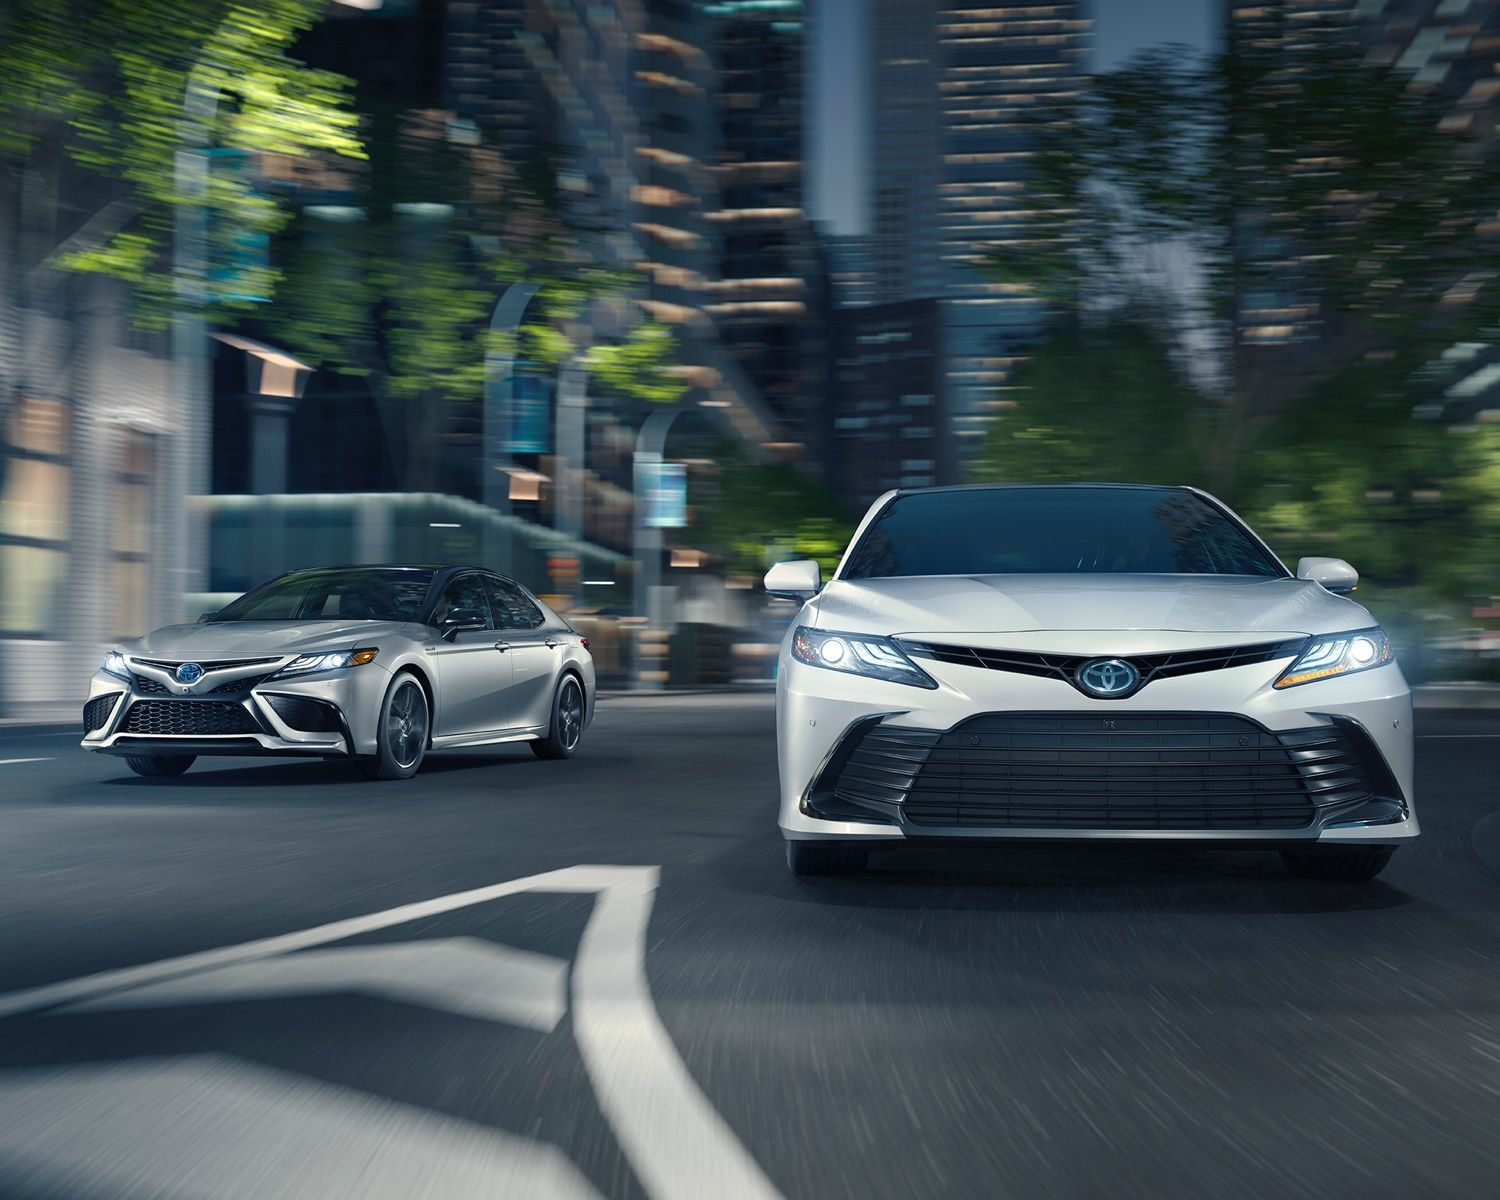 Toyota 2021 Camry Overview Gallery Hybrid Xse Celestial Silver Metallic Black Roof Hybrid Xle Wind Chill Pearl L